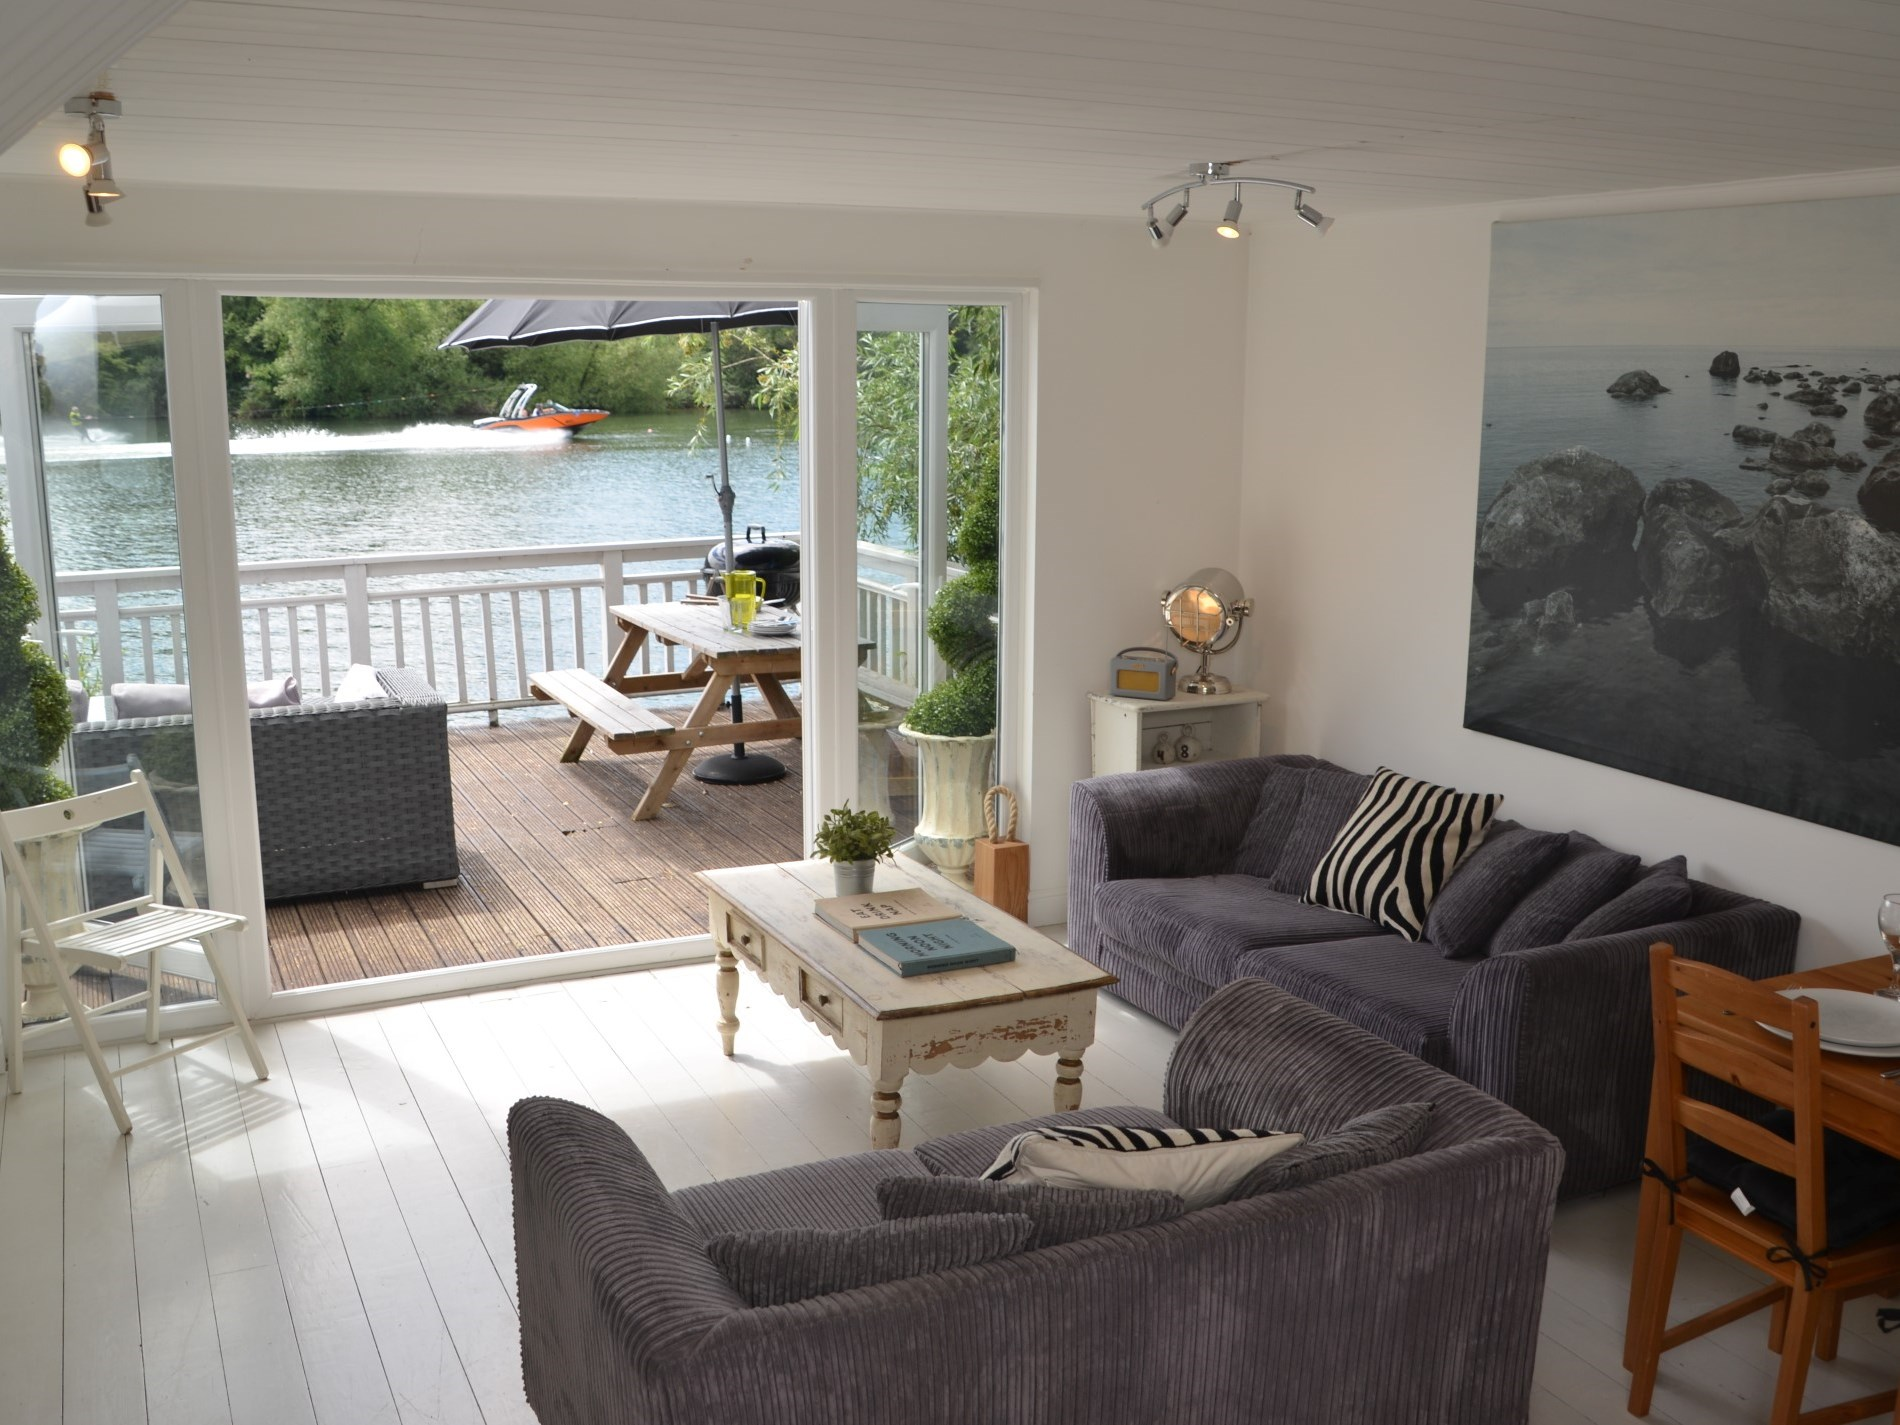 Open plan living area with french windows onto the balcony that overlooks the lake